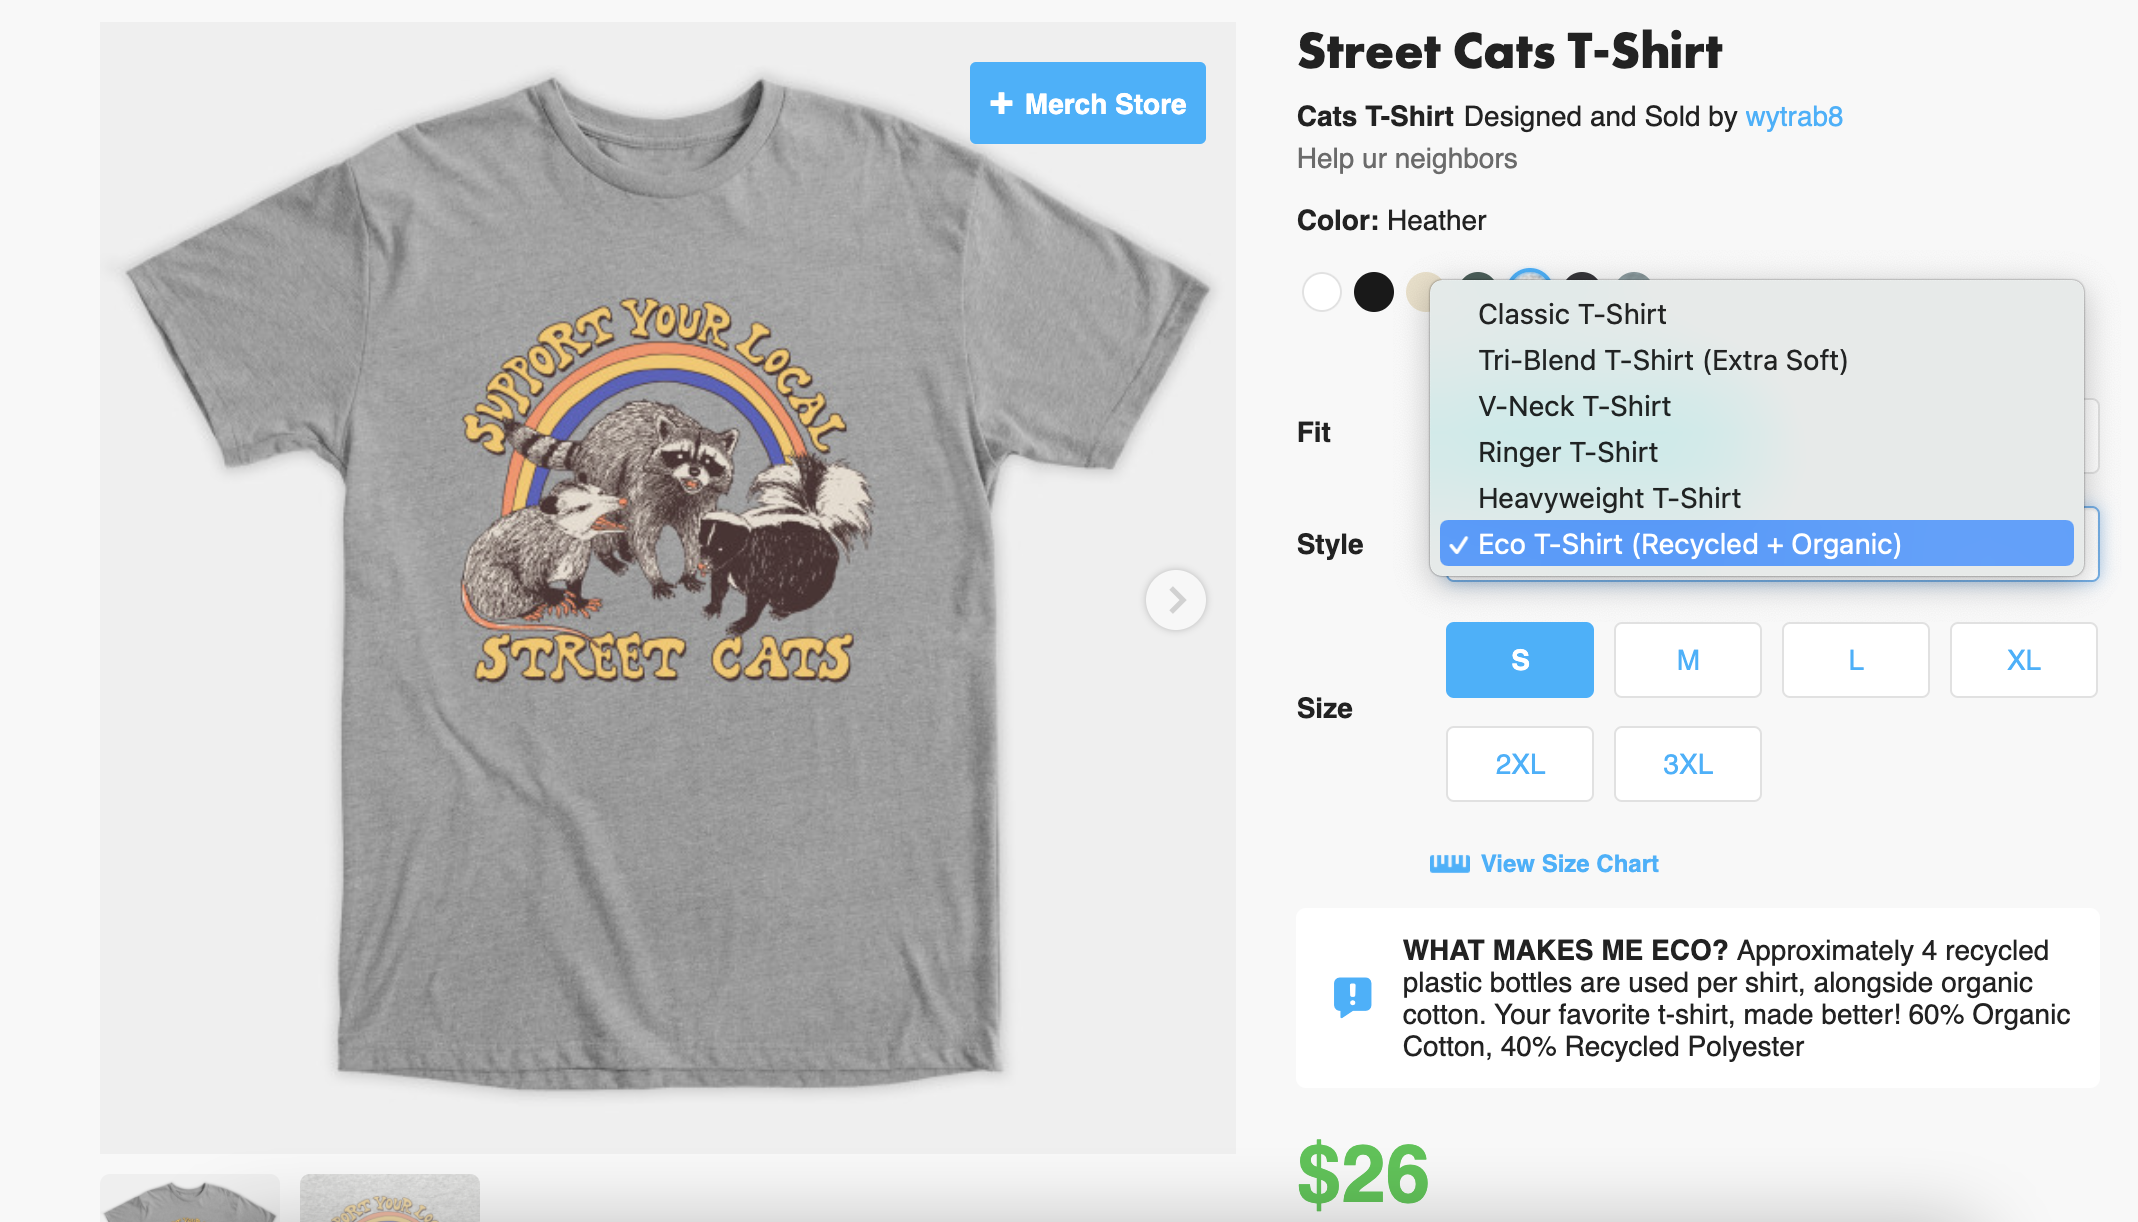 """a TeePublic product page showing a gray t-shirt with a slogan, """"Support your Local Street Cats,"""" and a drop-down menu showing the eco/recycled tee, its colorways, fit, and sizing"""